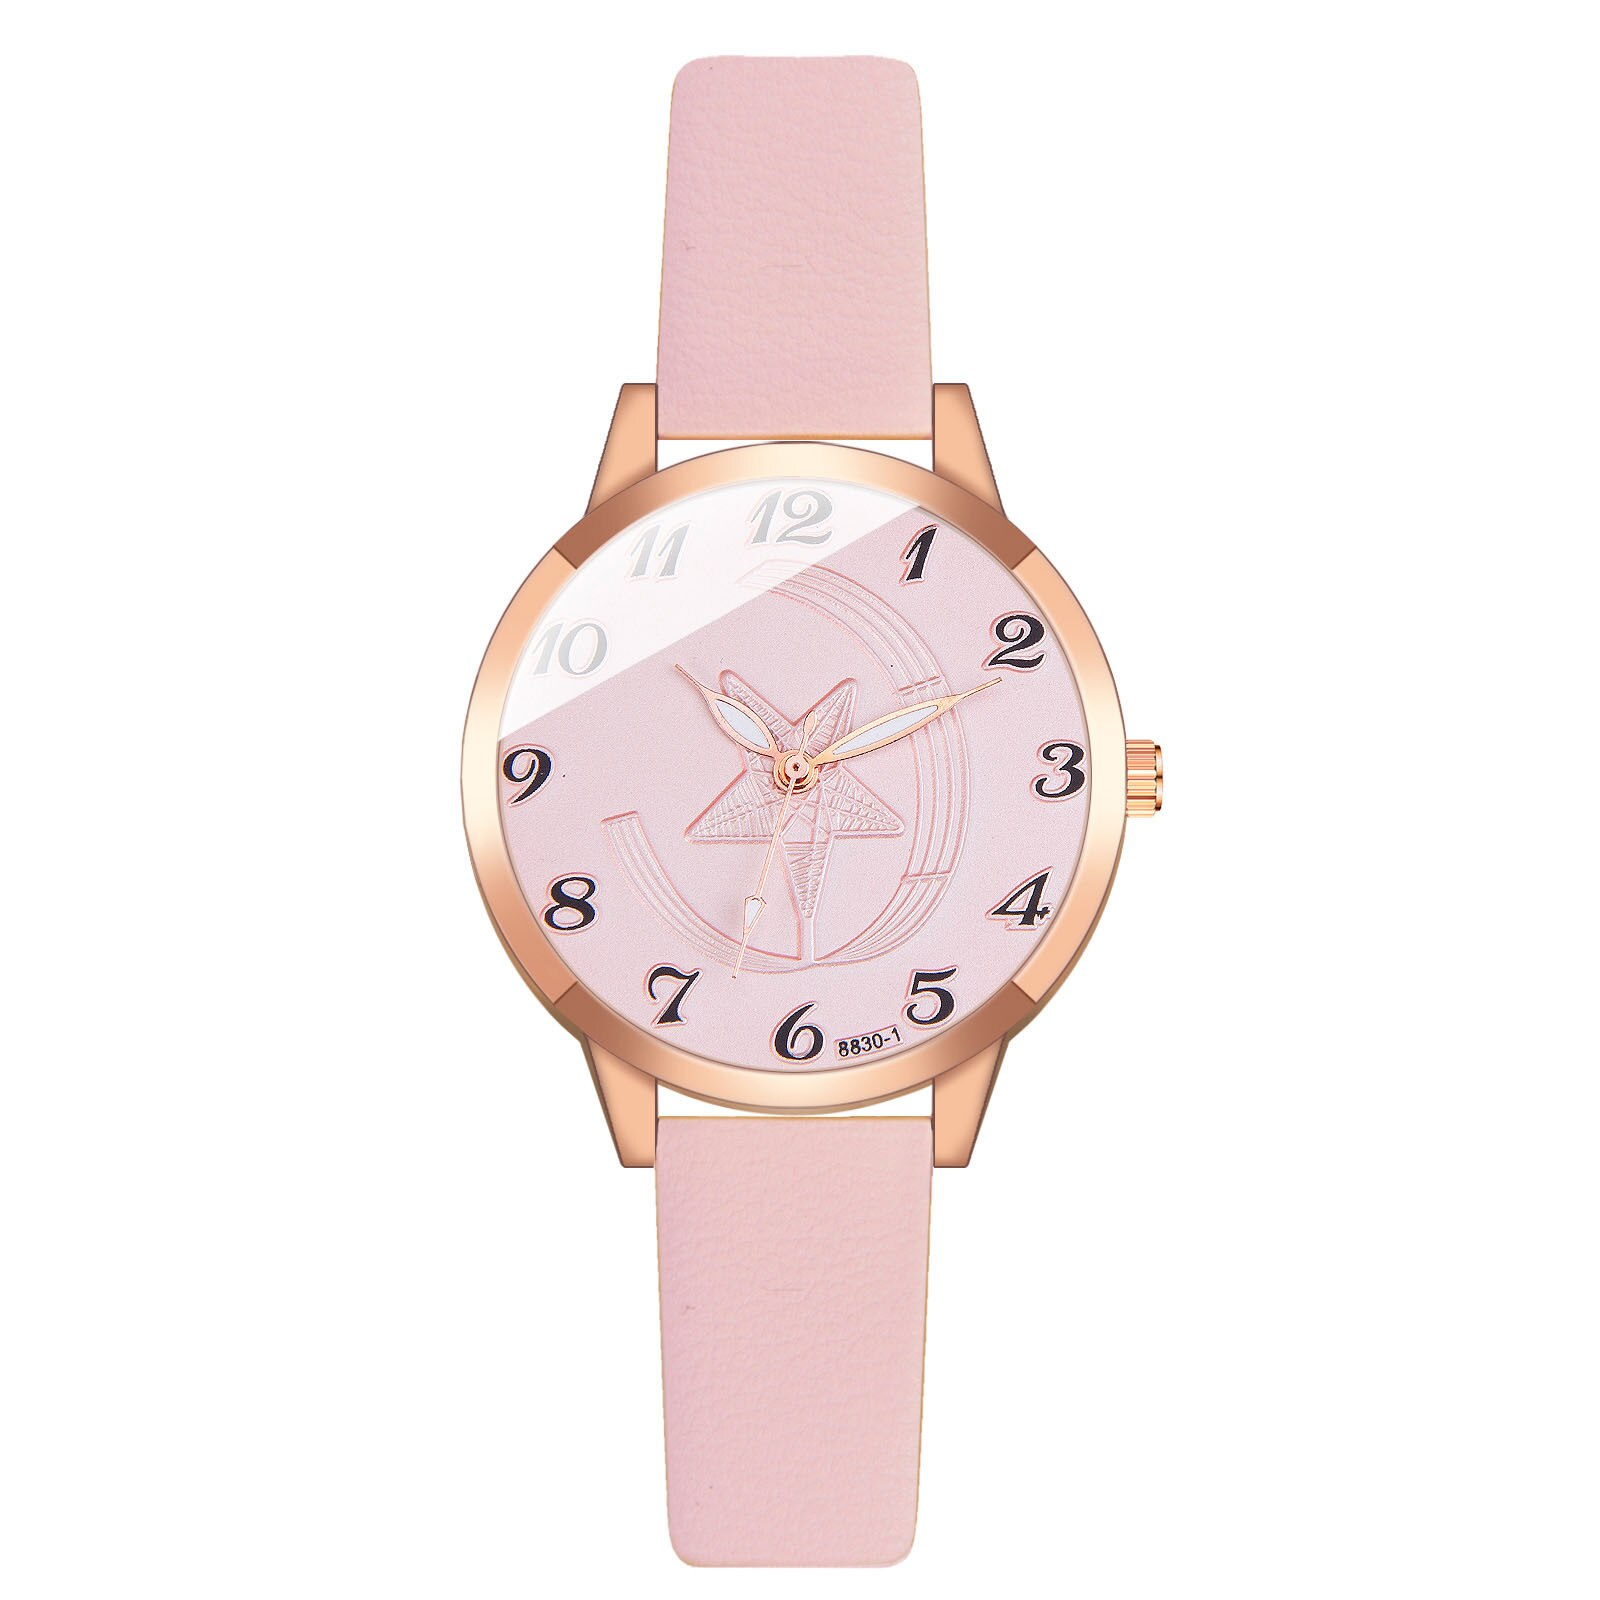 36x36mm JXS03 Ladies Quartz Watch Leather Strap Rotating Watch Suitable as a gift for mothers and lo